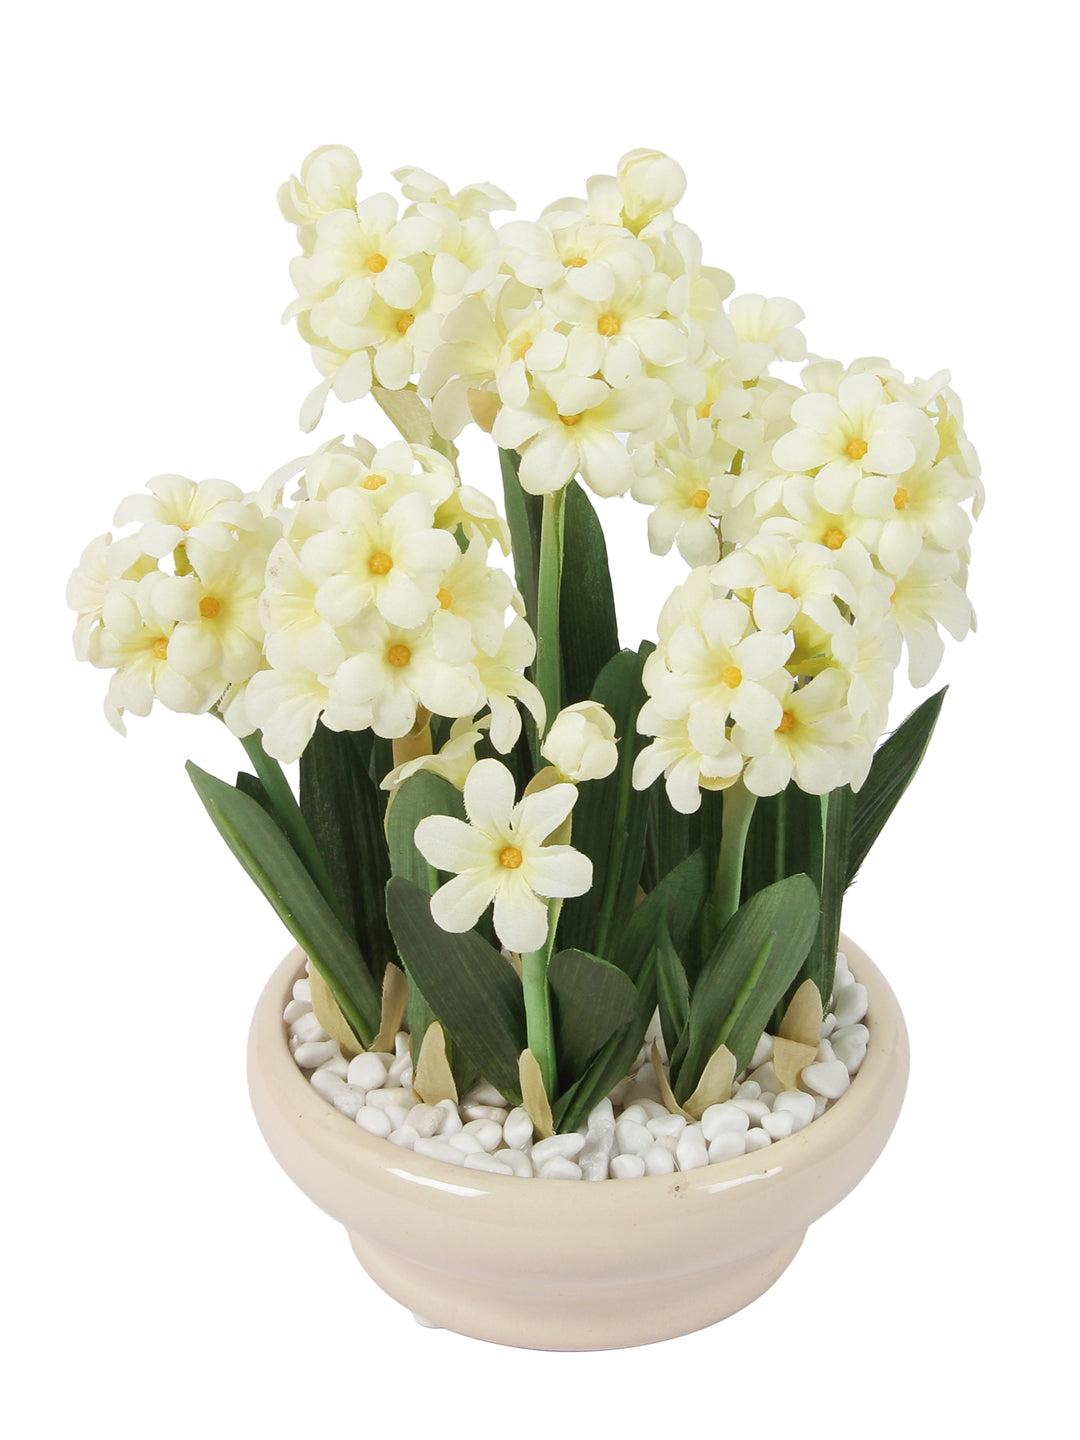 Artificial Flower Bunch with White Pebbles & Ceramic Pot